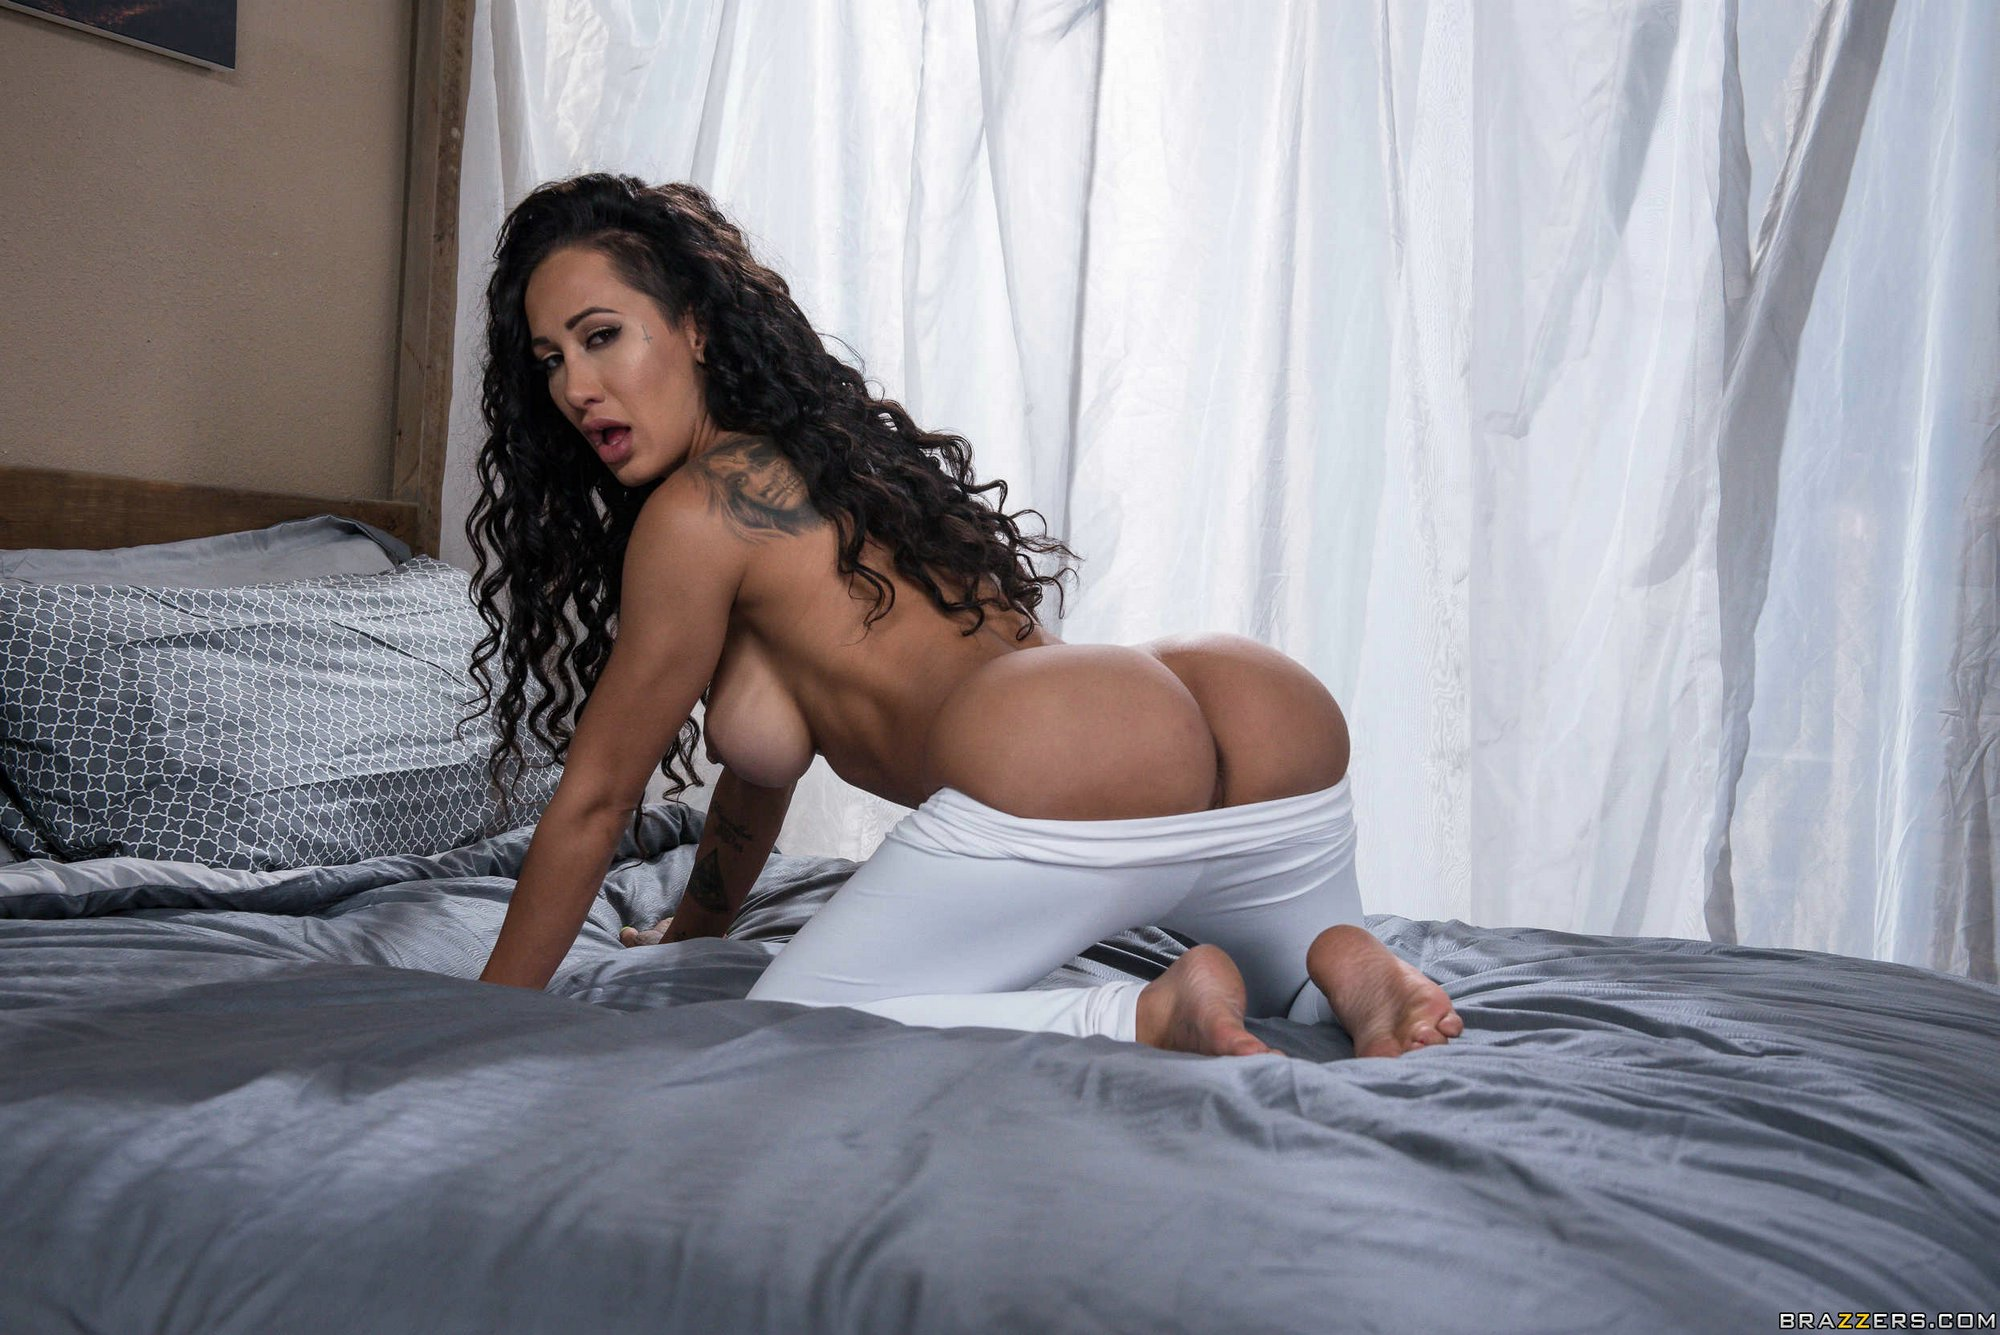 Amia Miley Nude amia miley strips off her white yoga pants and poses naked